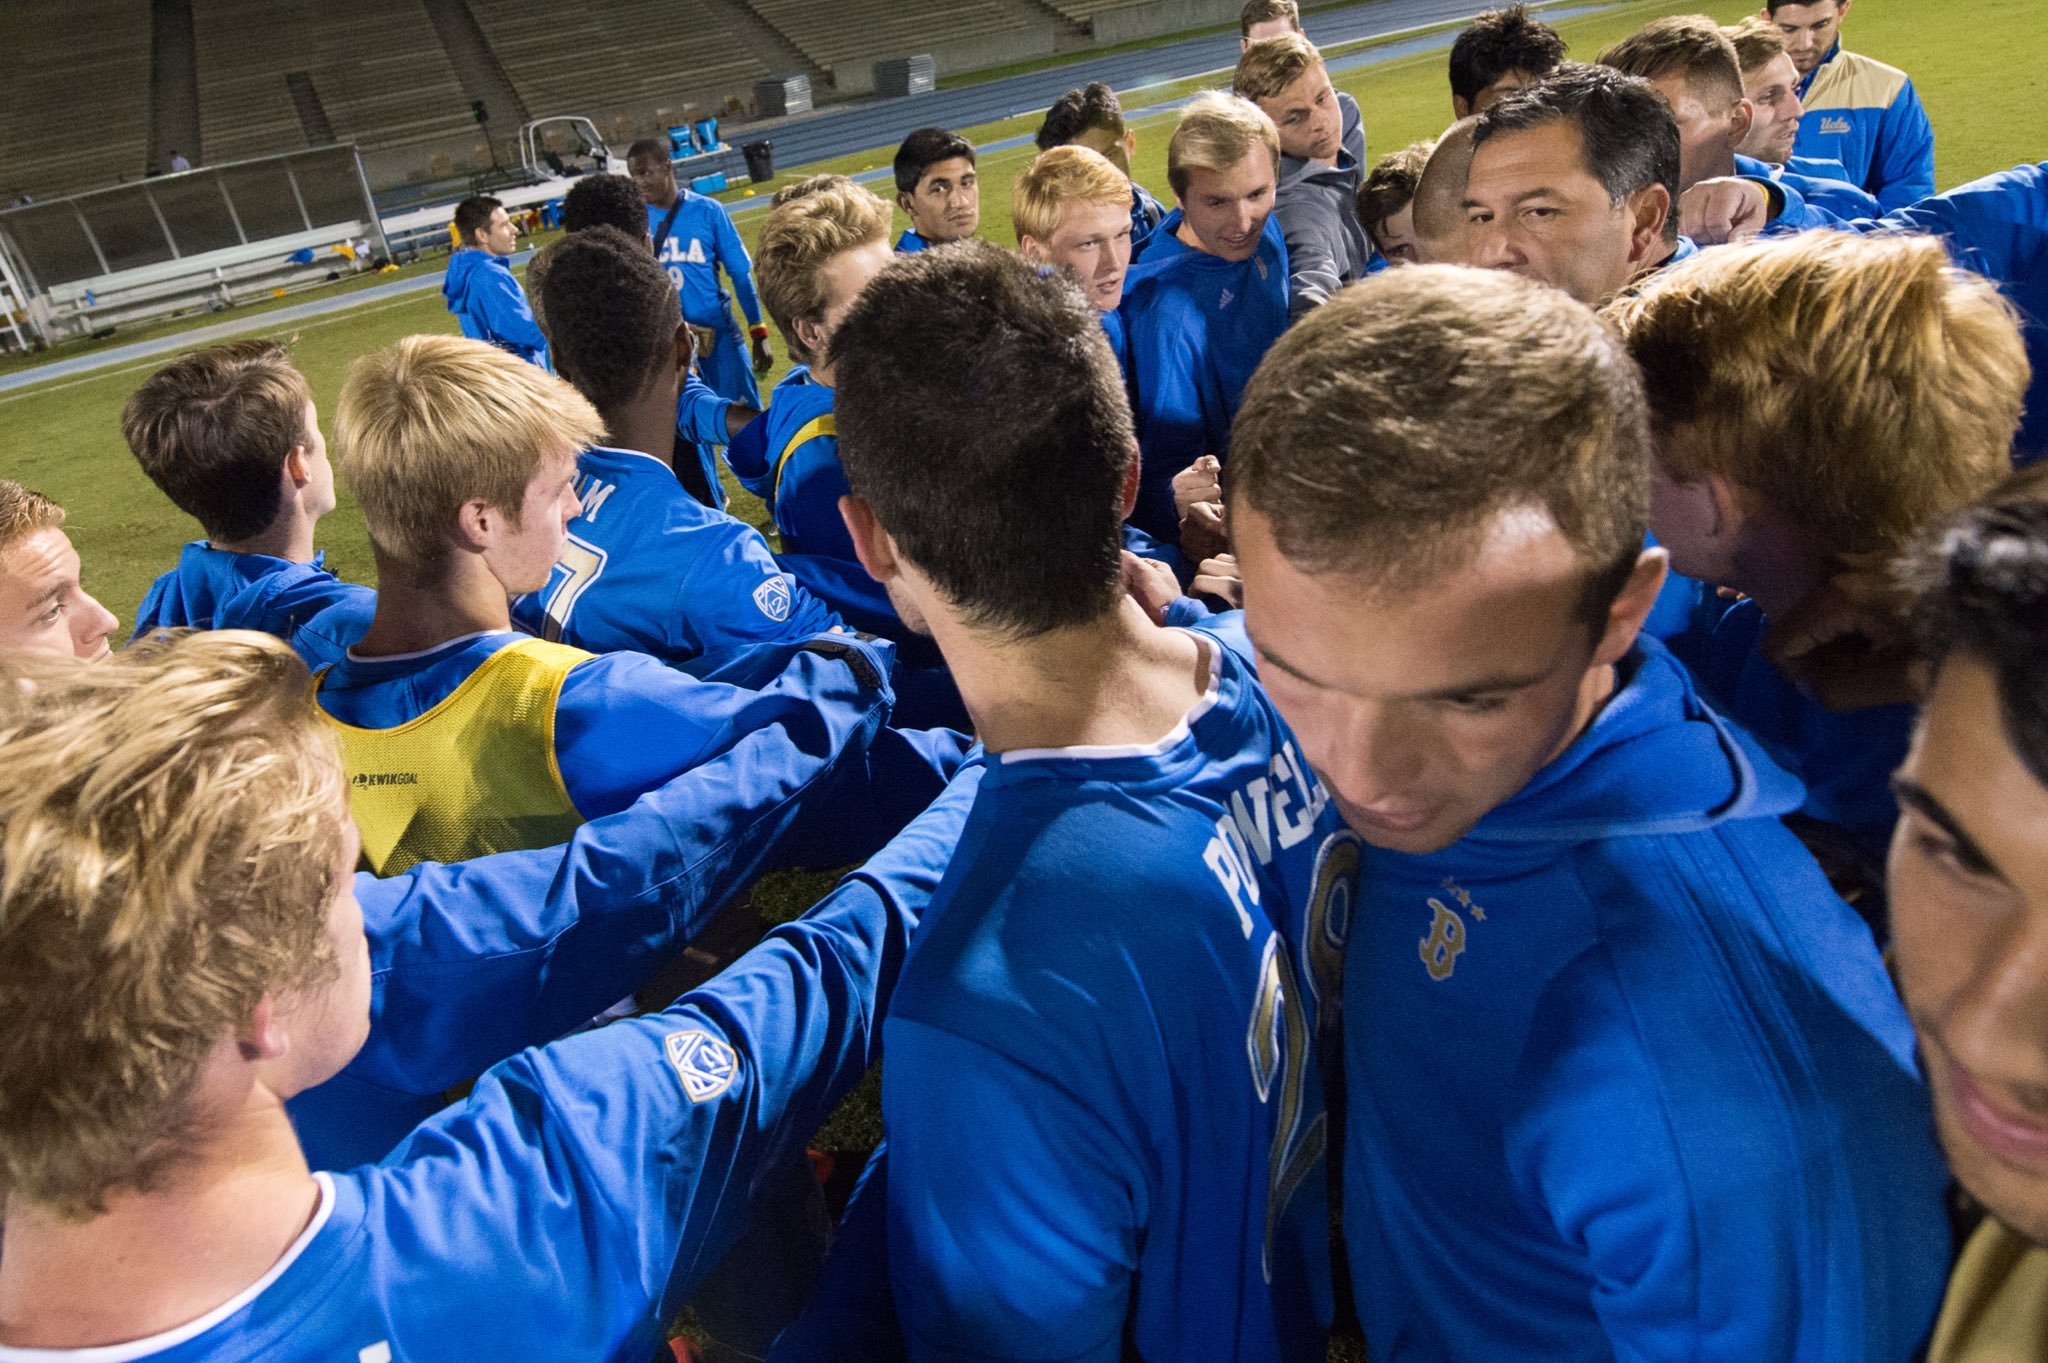 UCLA announces Men's Soccer schedule with �� games on the @Pac12Network!   Story: https://t.co/y4TpKzNaFy   #GoBruins https://t.co/4O3LVJ5FWm